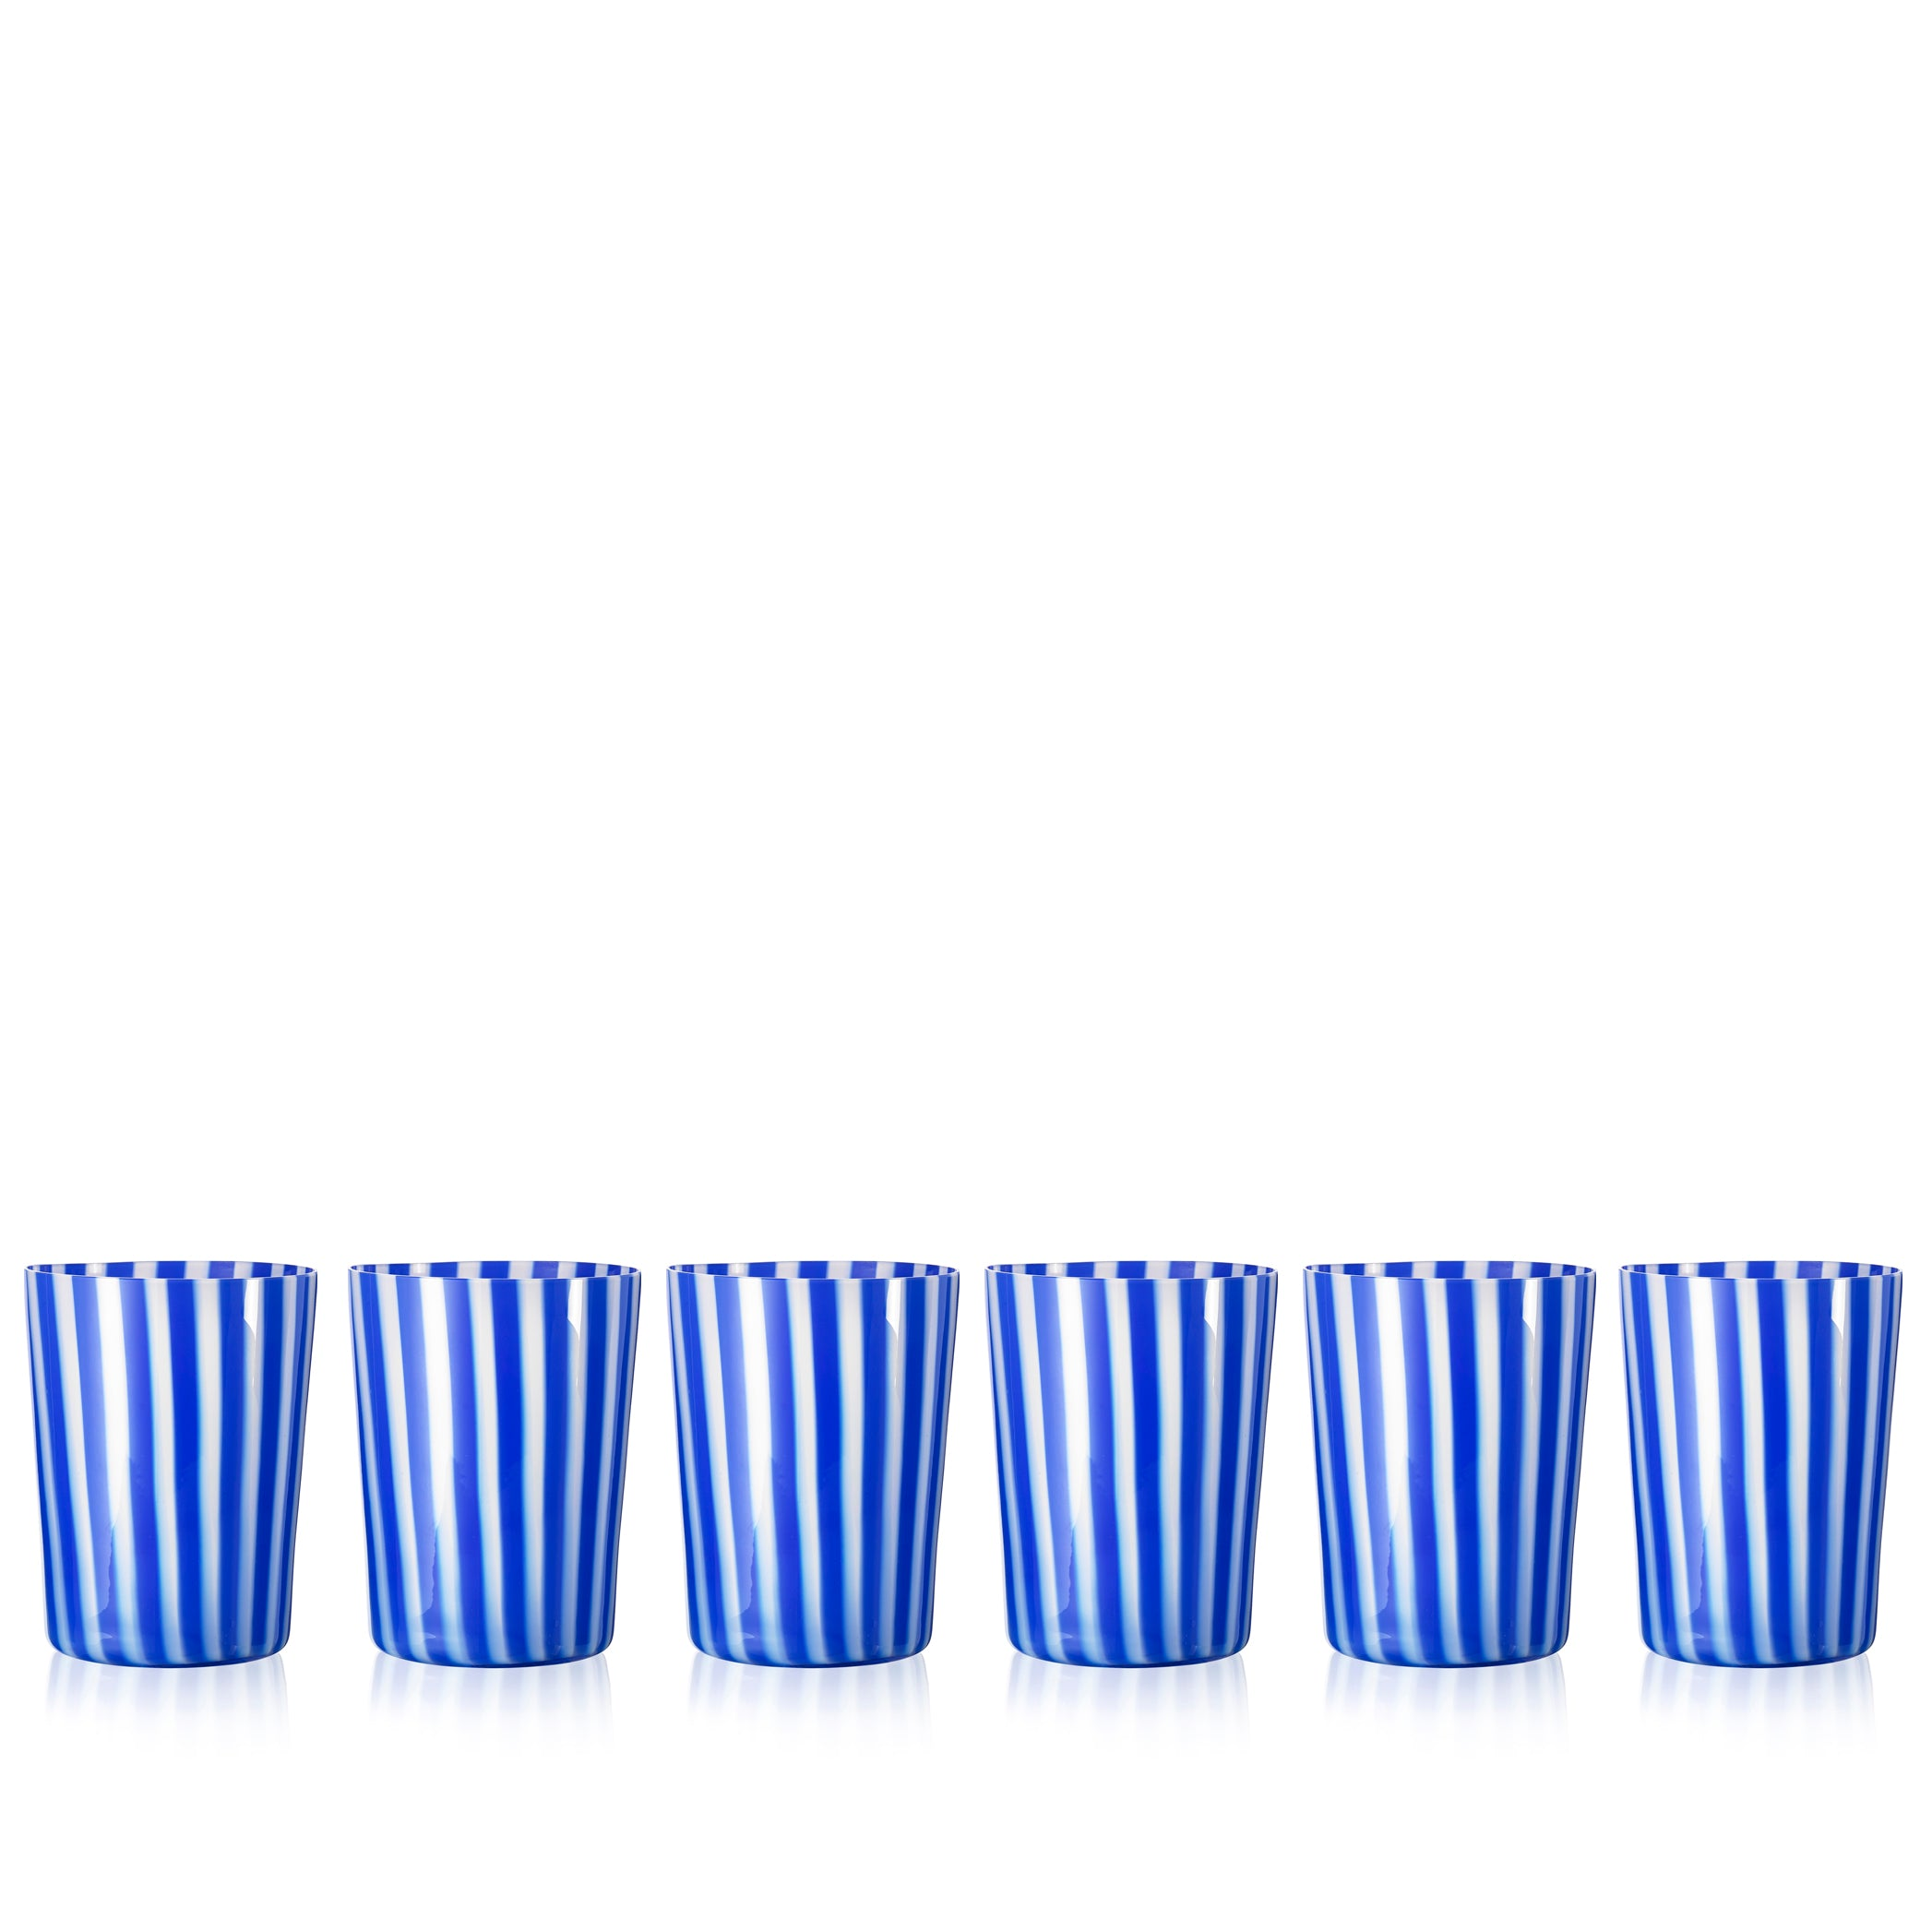 Set of Six Handblown 'Pastelli' Glass Tumblers, Designed by LPWK in Dark Blue and White Stripe